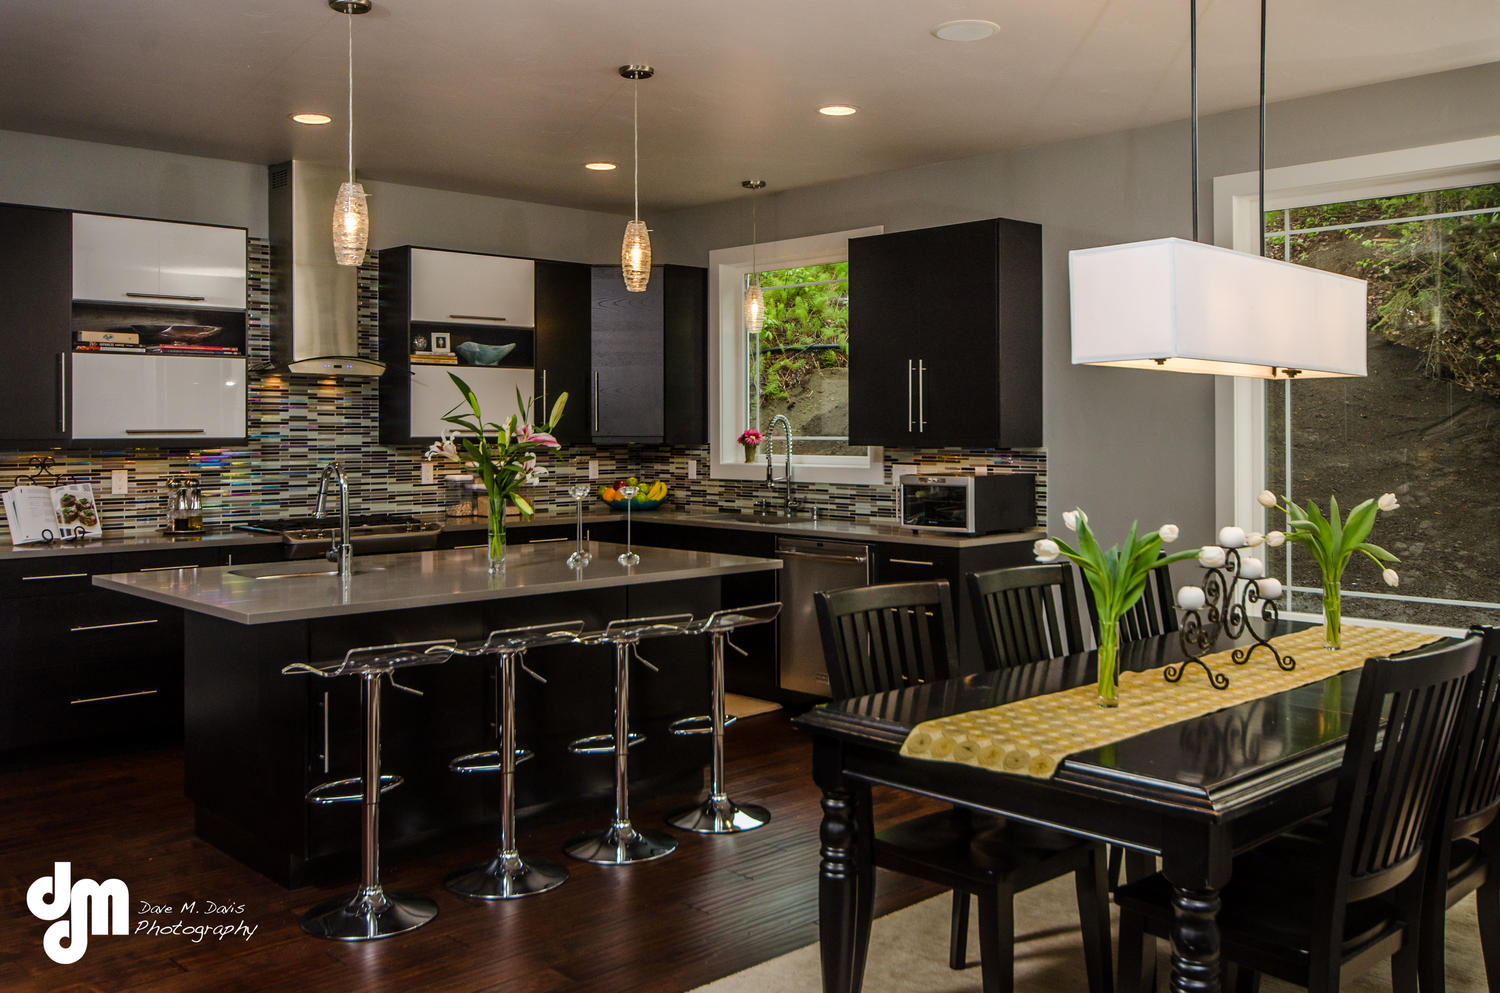 2922 Marston Drive Anchorage-large-010-Dining RoomKitchen-1500x993-72dpi.jpg